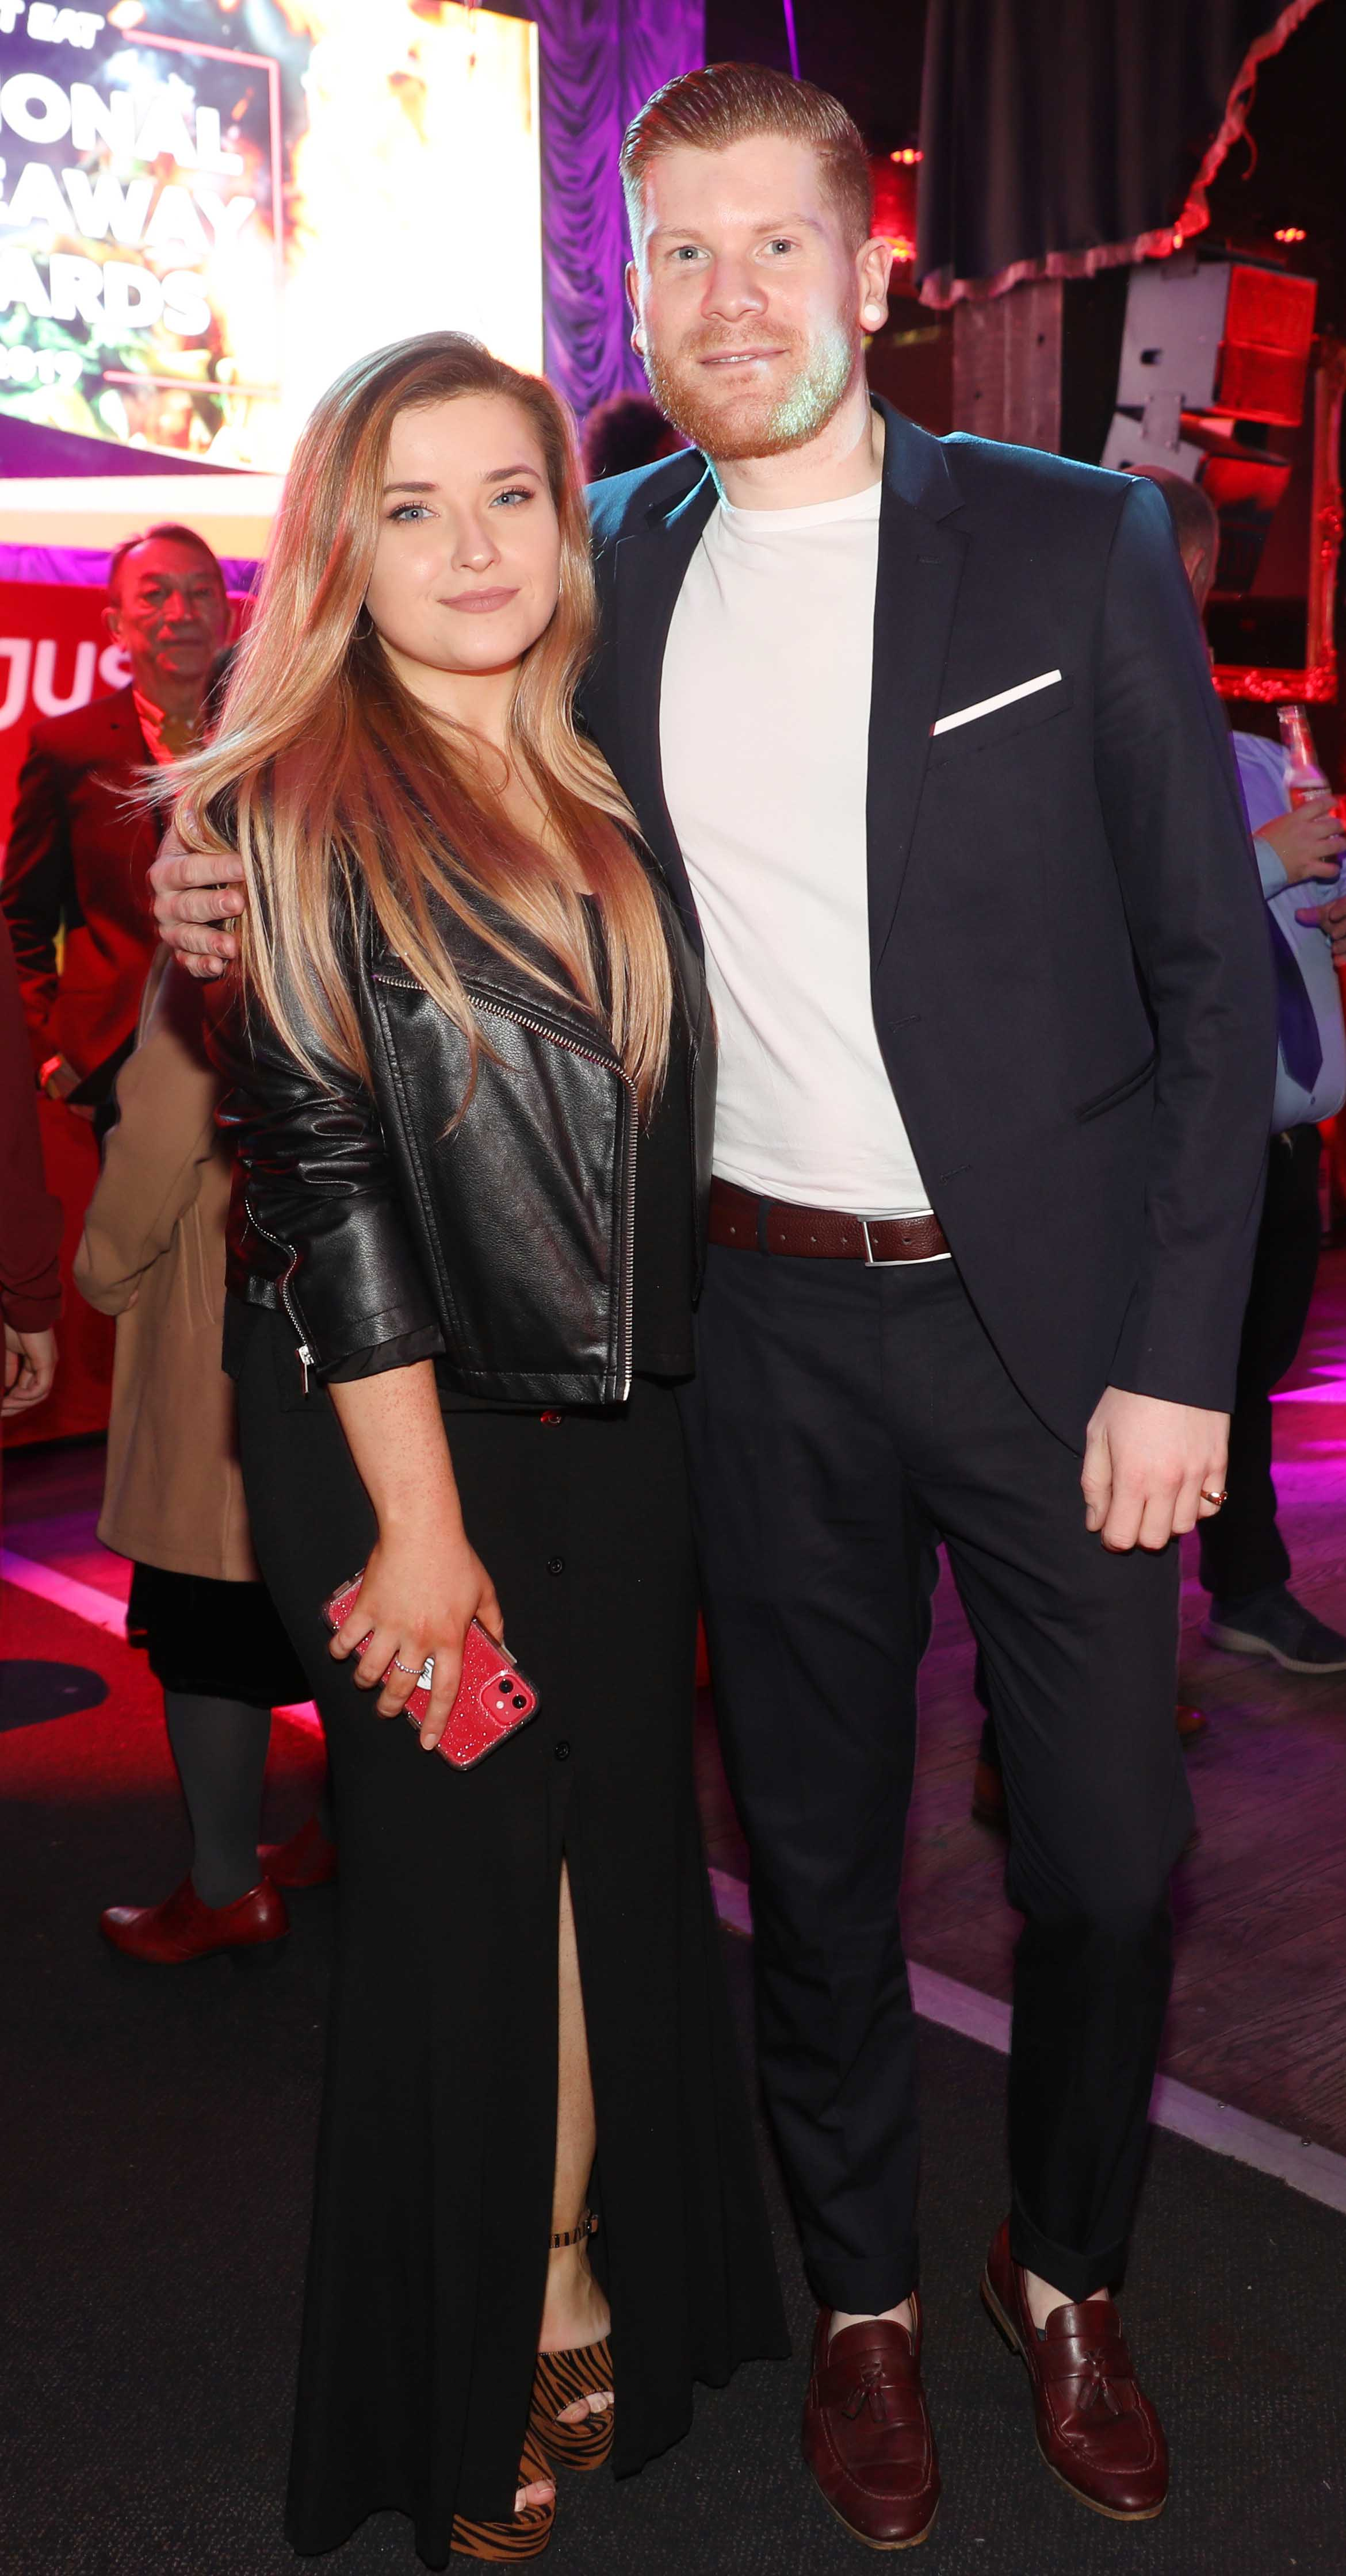 Pictured last night were Emma Costello and Pete Ungless at the sixth annual Just Eat National Takeaway Awards in Dublin's Twenty Two. Photograph: Leon Farrell / Photocall Ireland